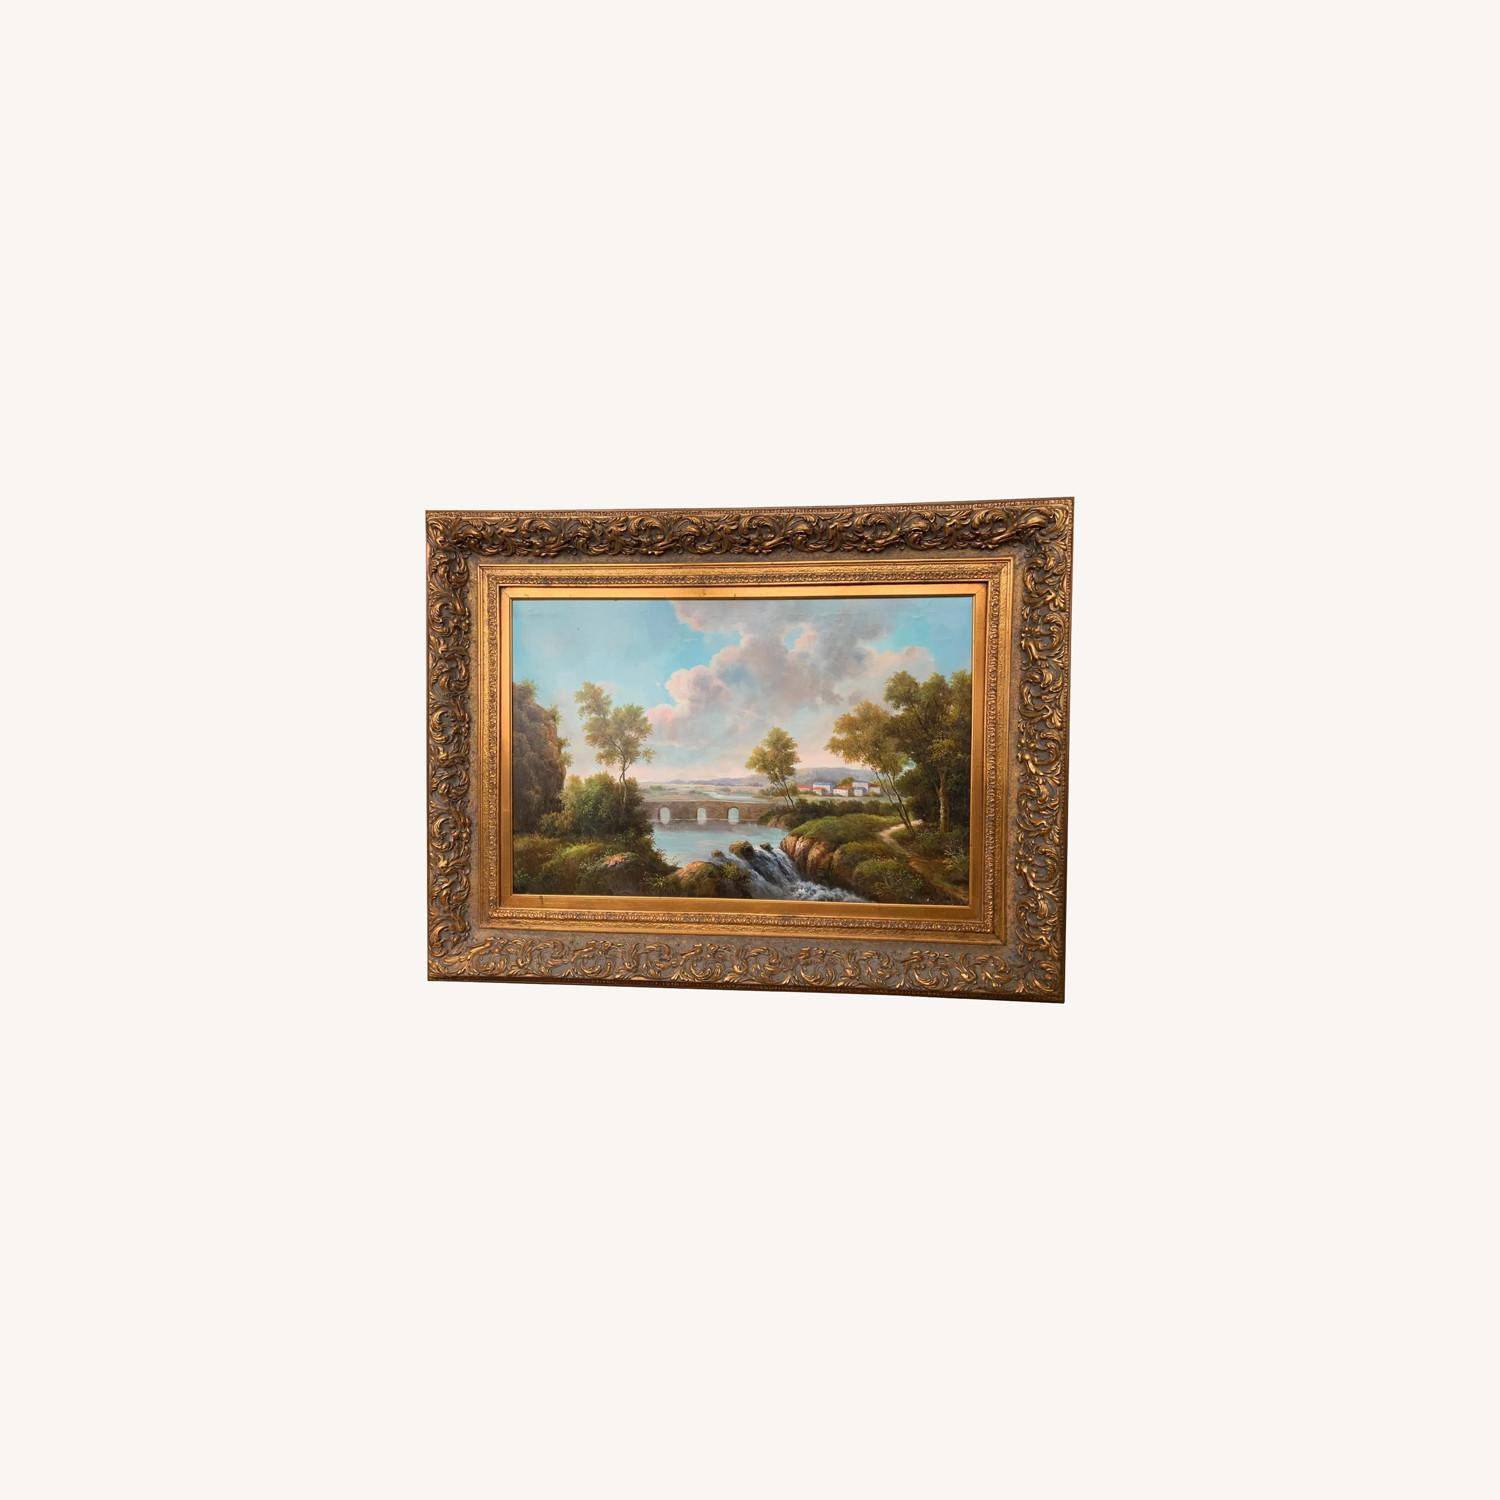 Framed Early 20th Century Oil Painting - G.Henson - image-0